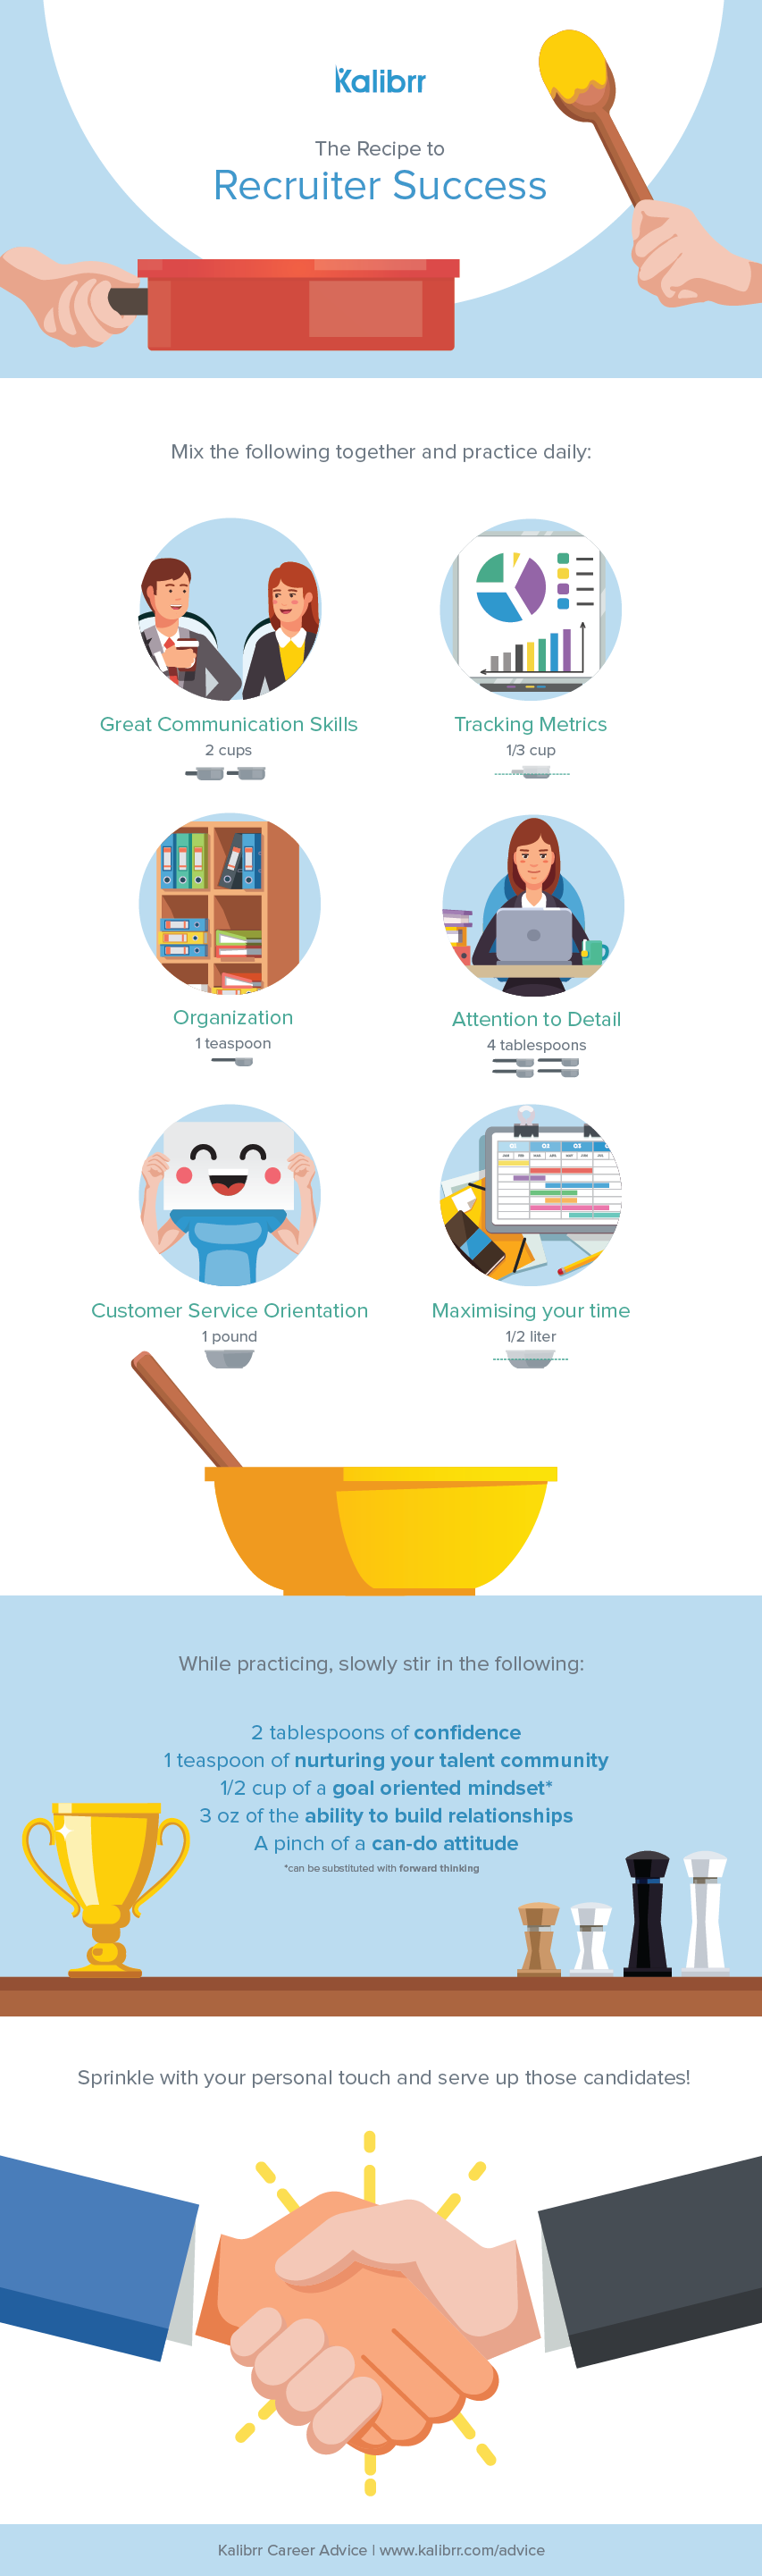 infographic_recipe_to_recruiter_success-01